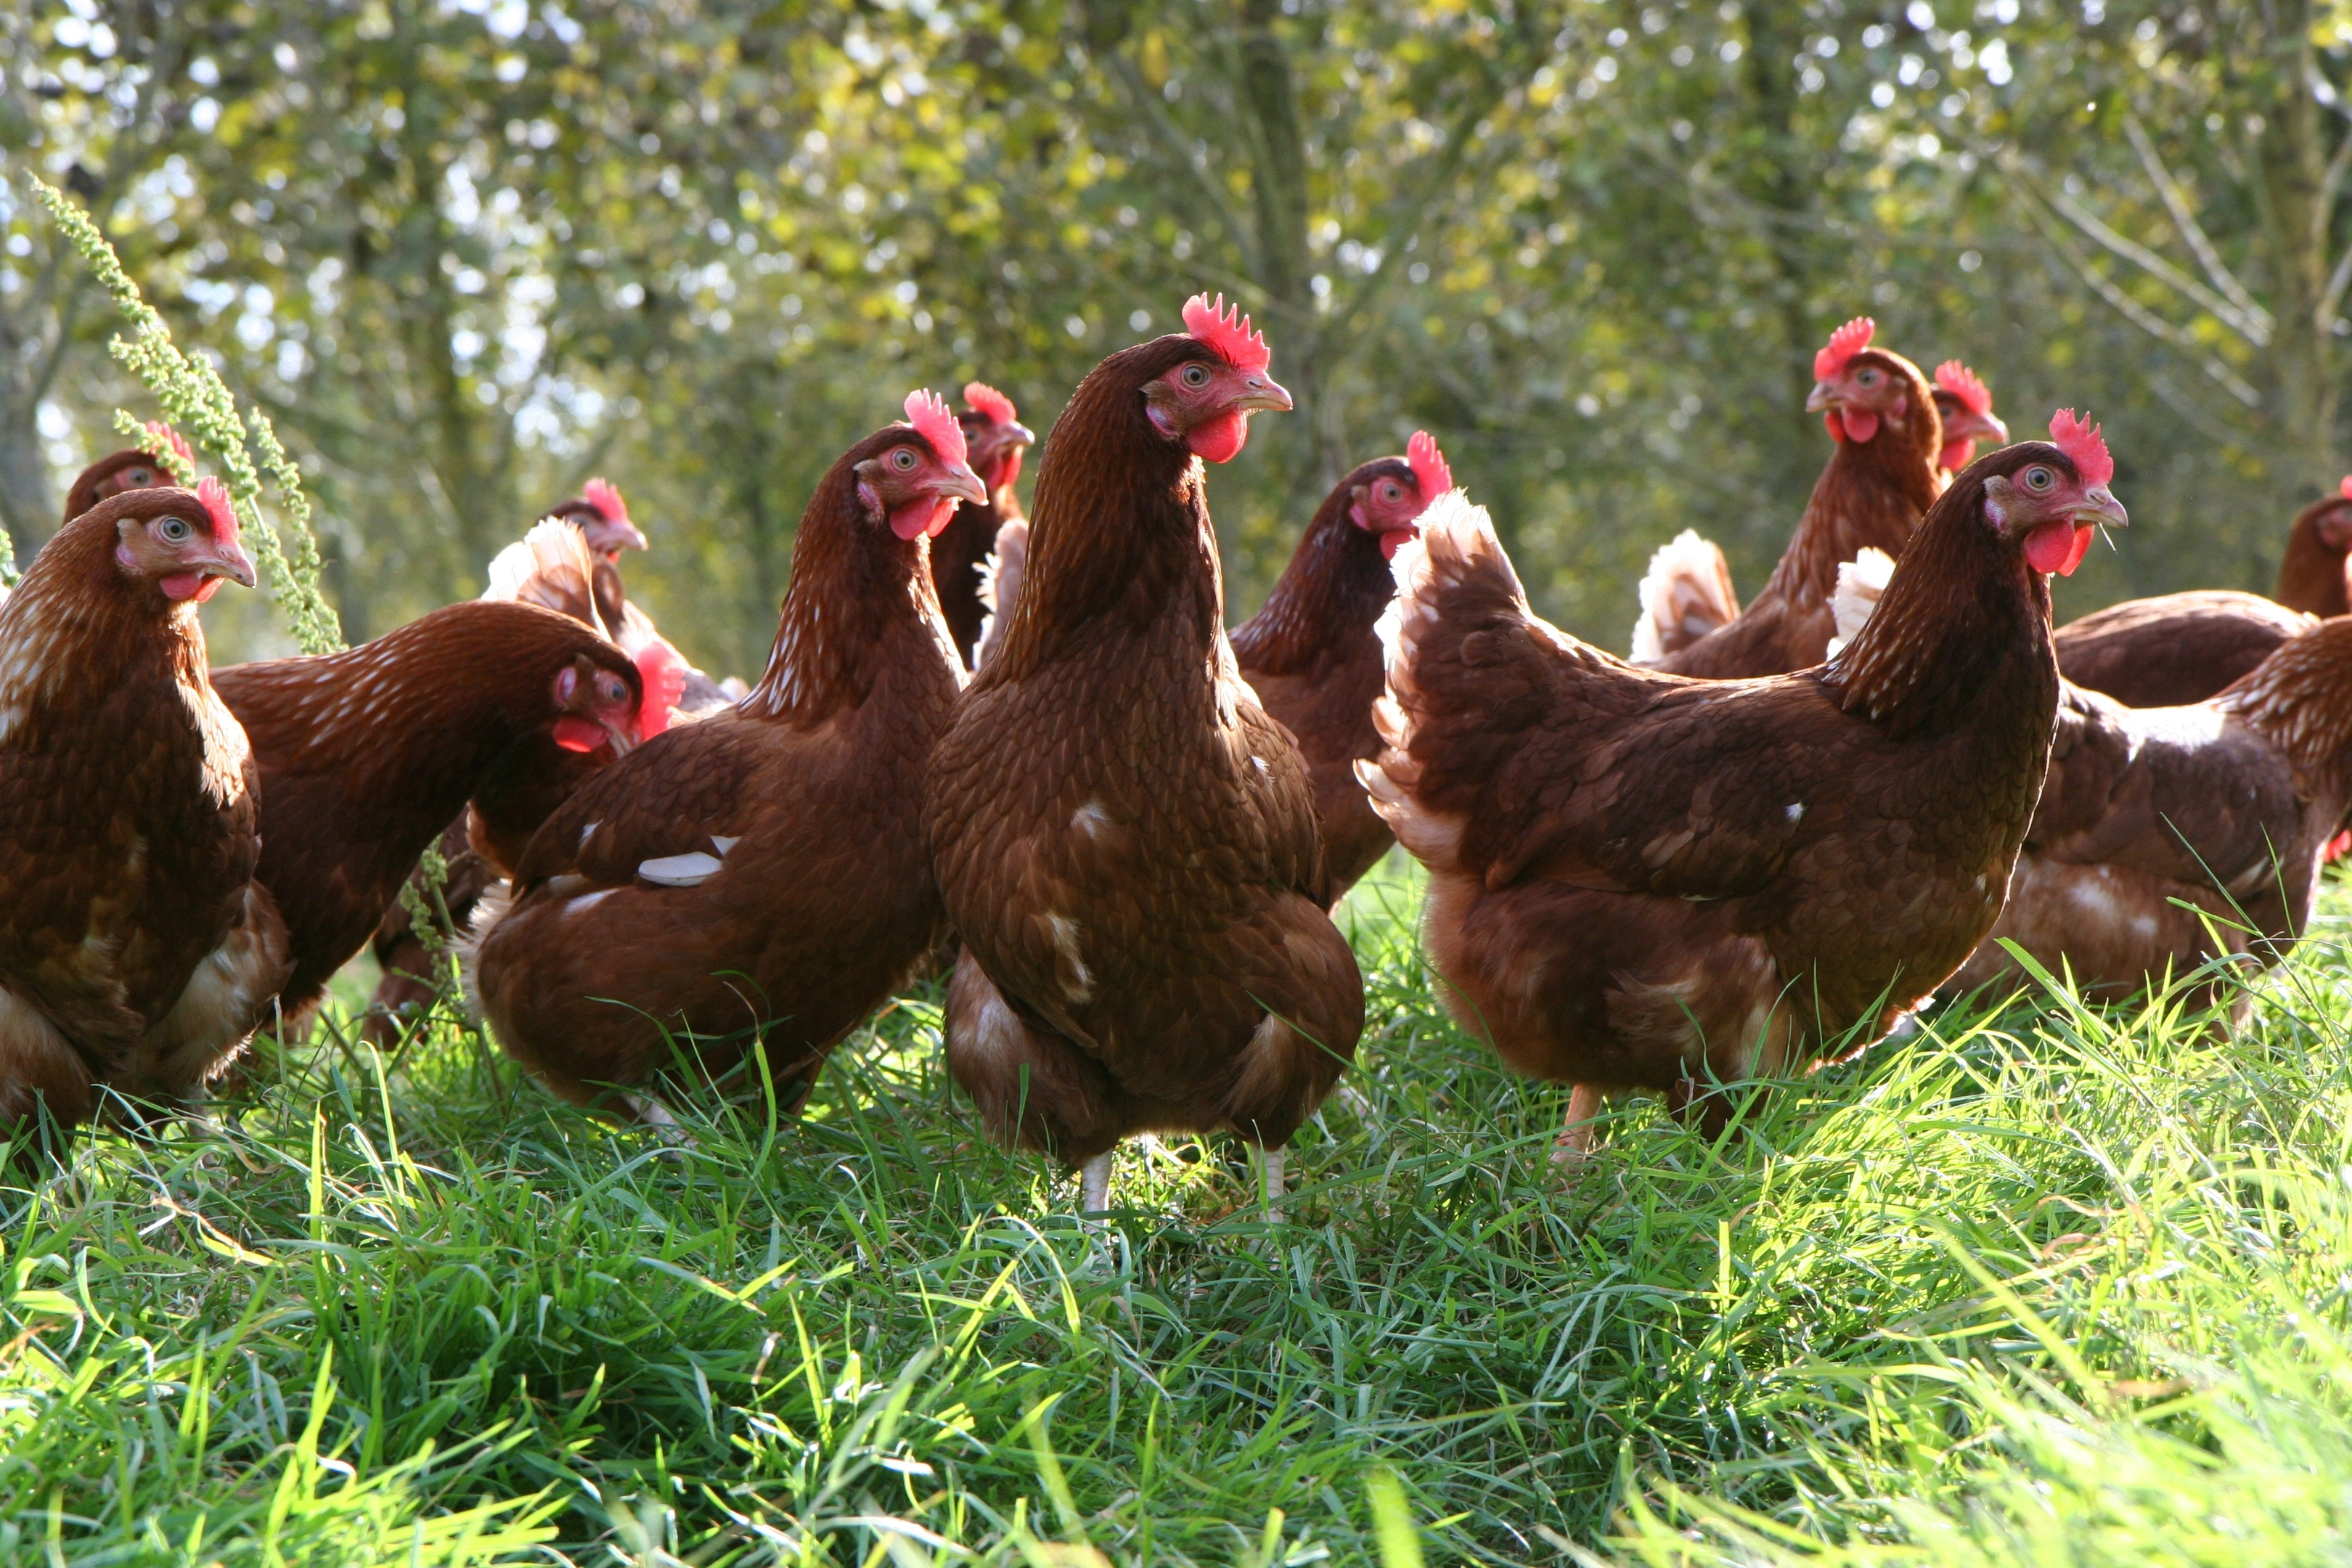 Will retailers pass on the additional costs of producing free-range eggs to their customers?